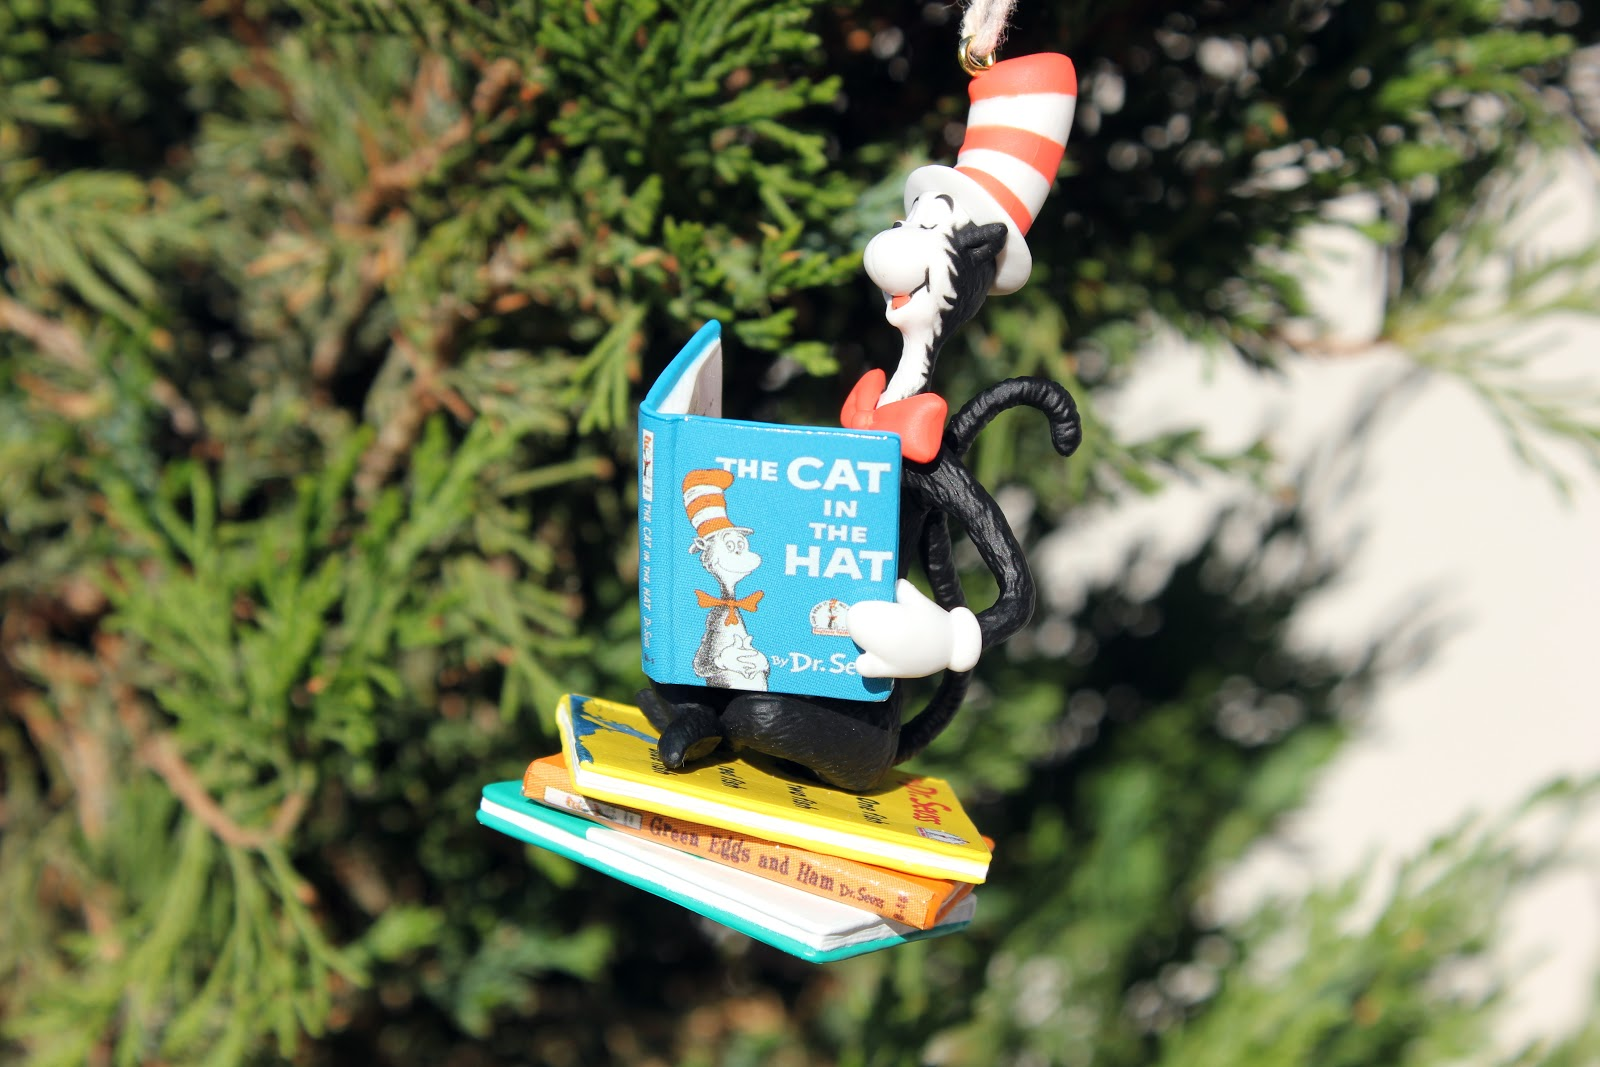 Cat in the hat ornaments - Everyone Knows The Cat In The Hat Green Eggs And Ham One Fish Two Fish And Hop On Pop The Artist Katrina Bricker Did A Fabulous Job Capturing The Great